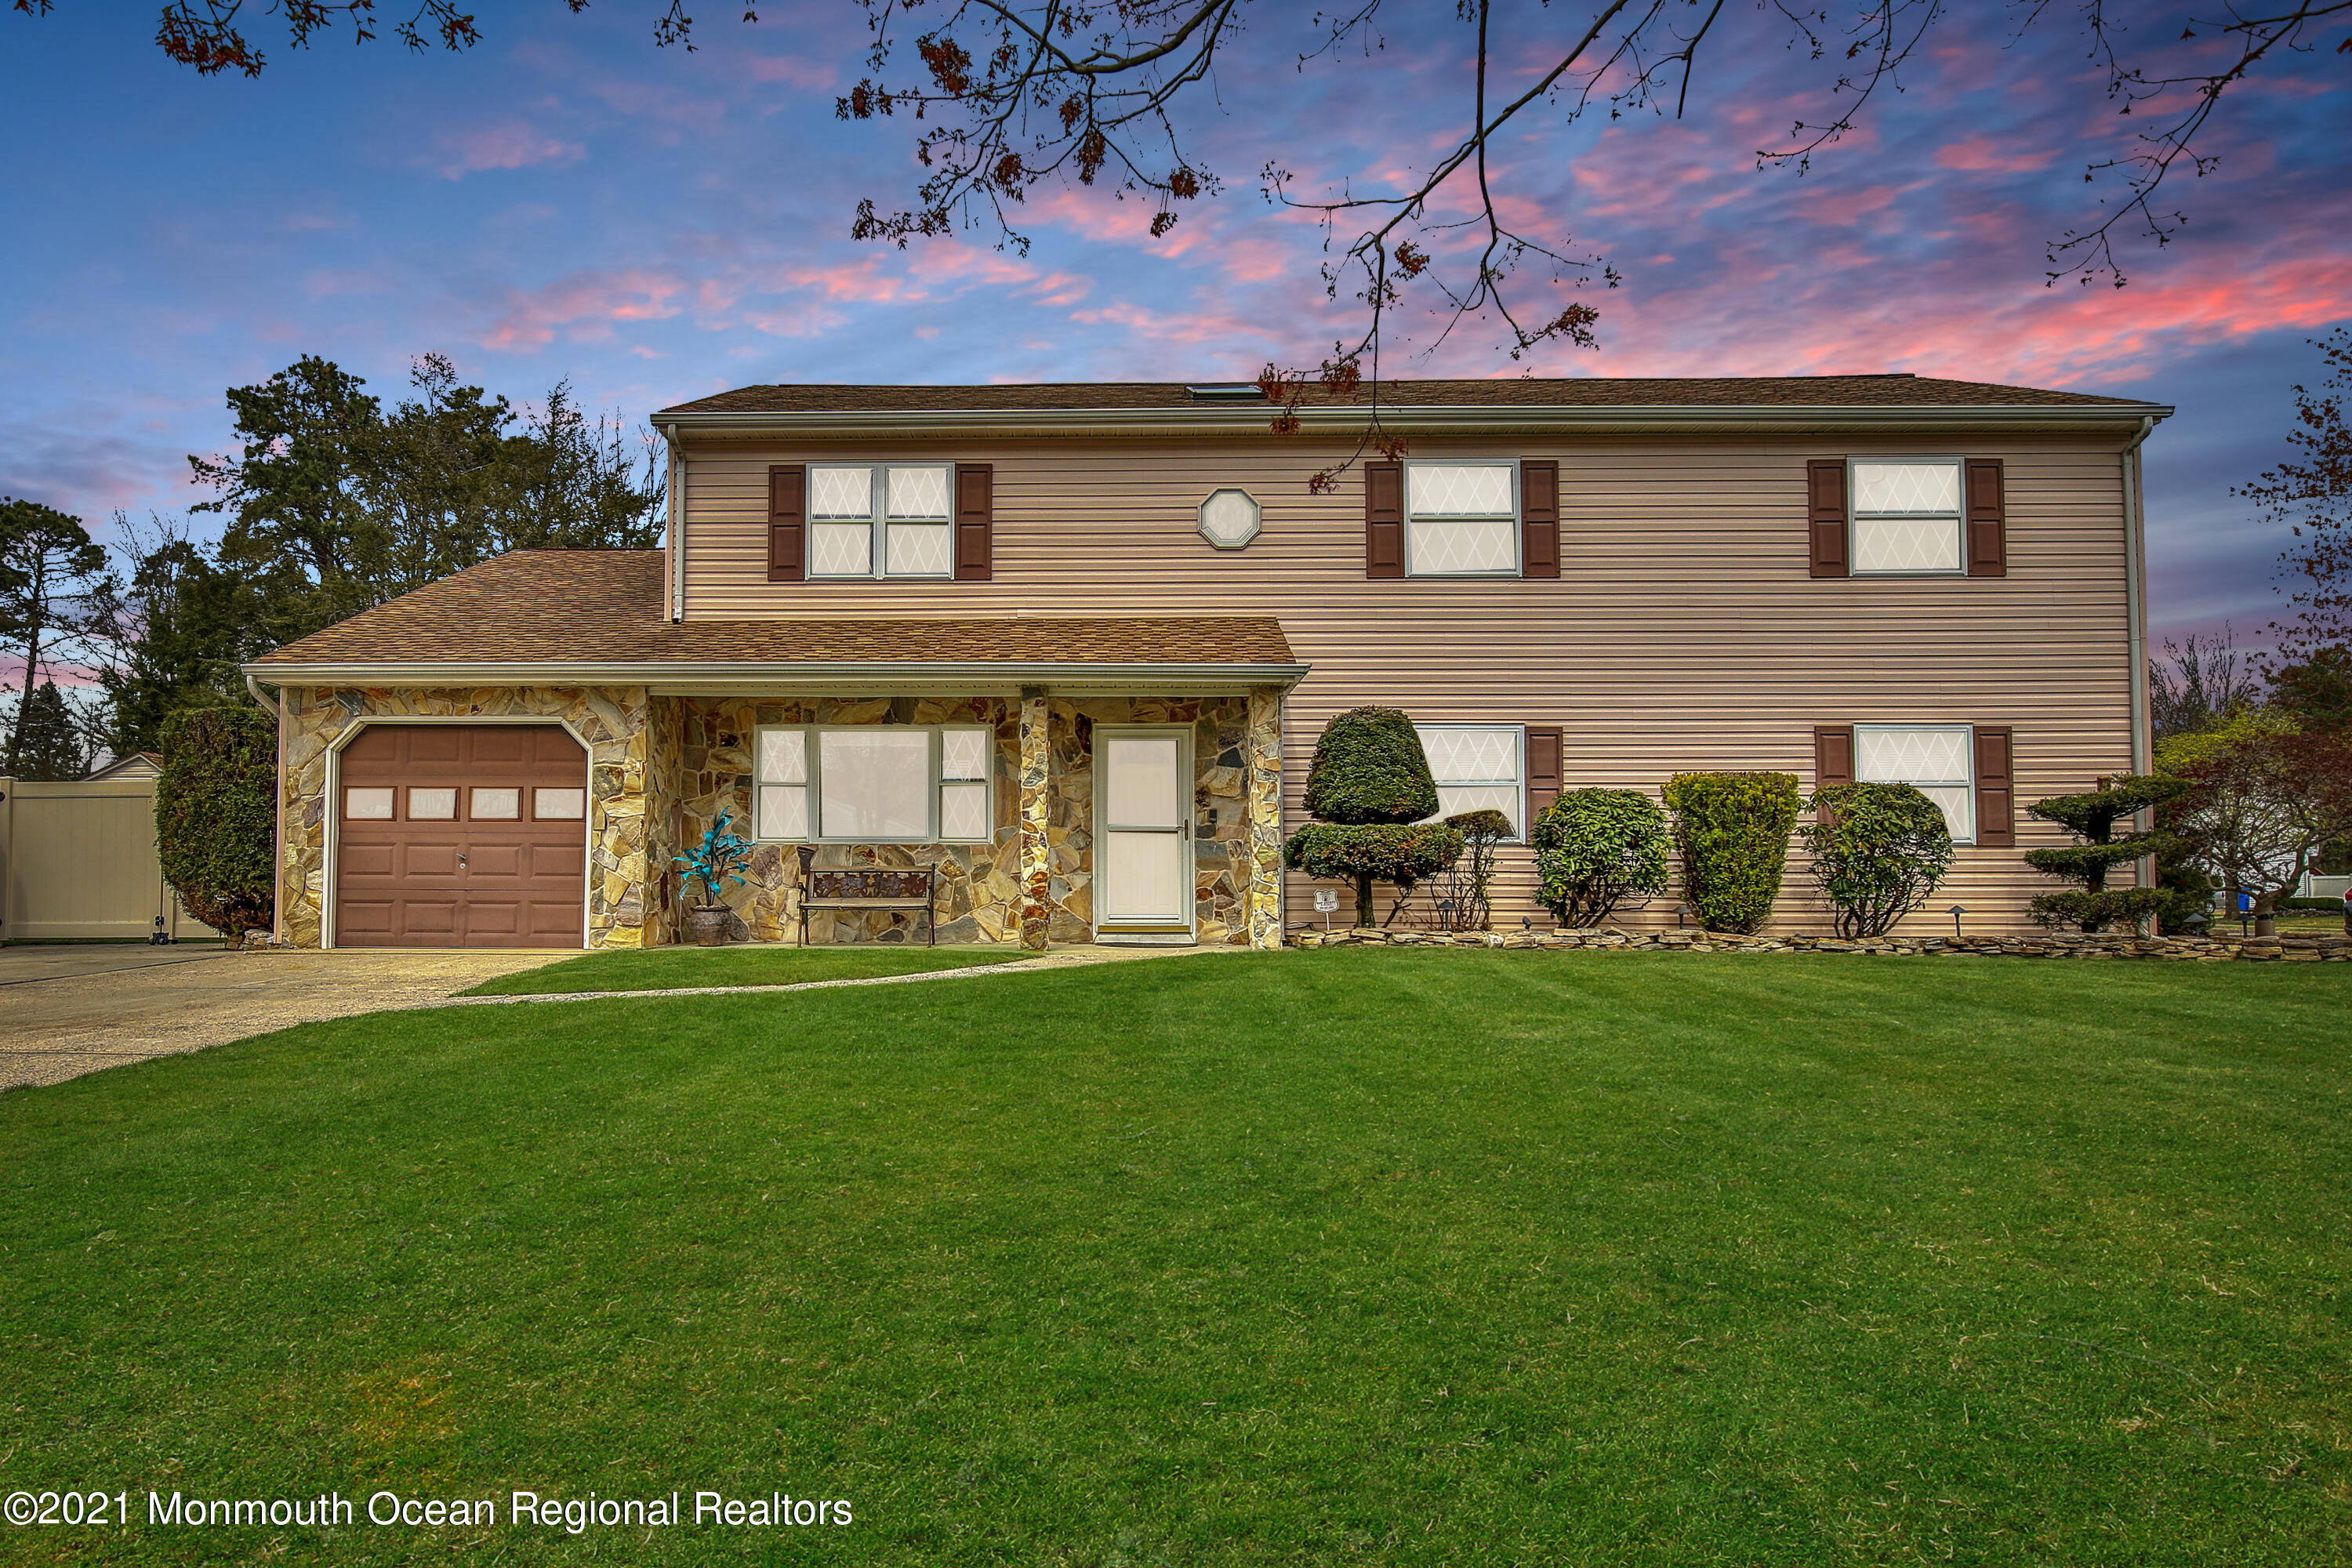 1096 Verdant Road, Toms River, New Jersey 08753, 5 Bedrooms Bedrooms, ,3 BathroomsBathrooms,Single Family,For Sale,1096 Verdant Road,2,22111338